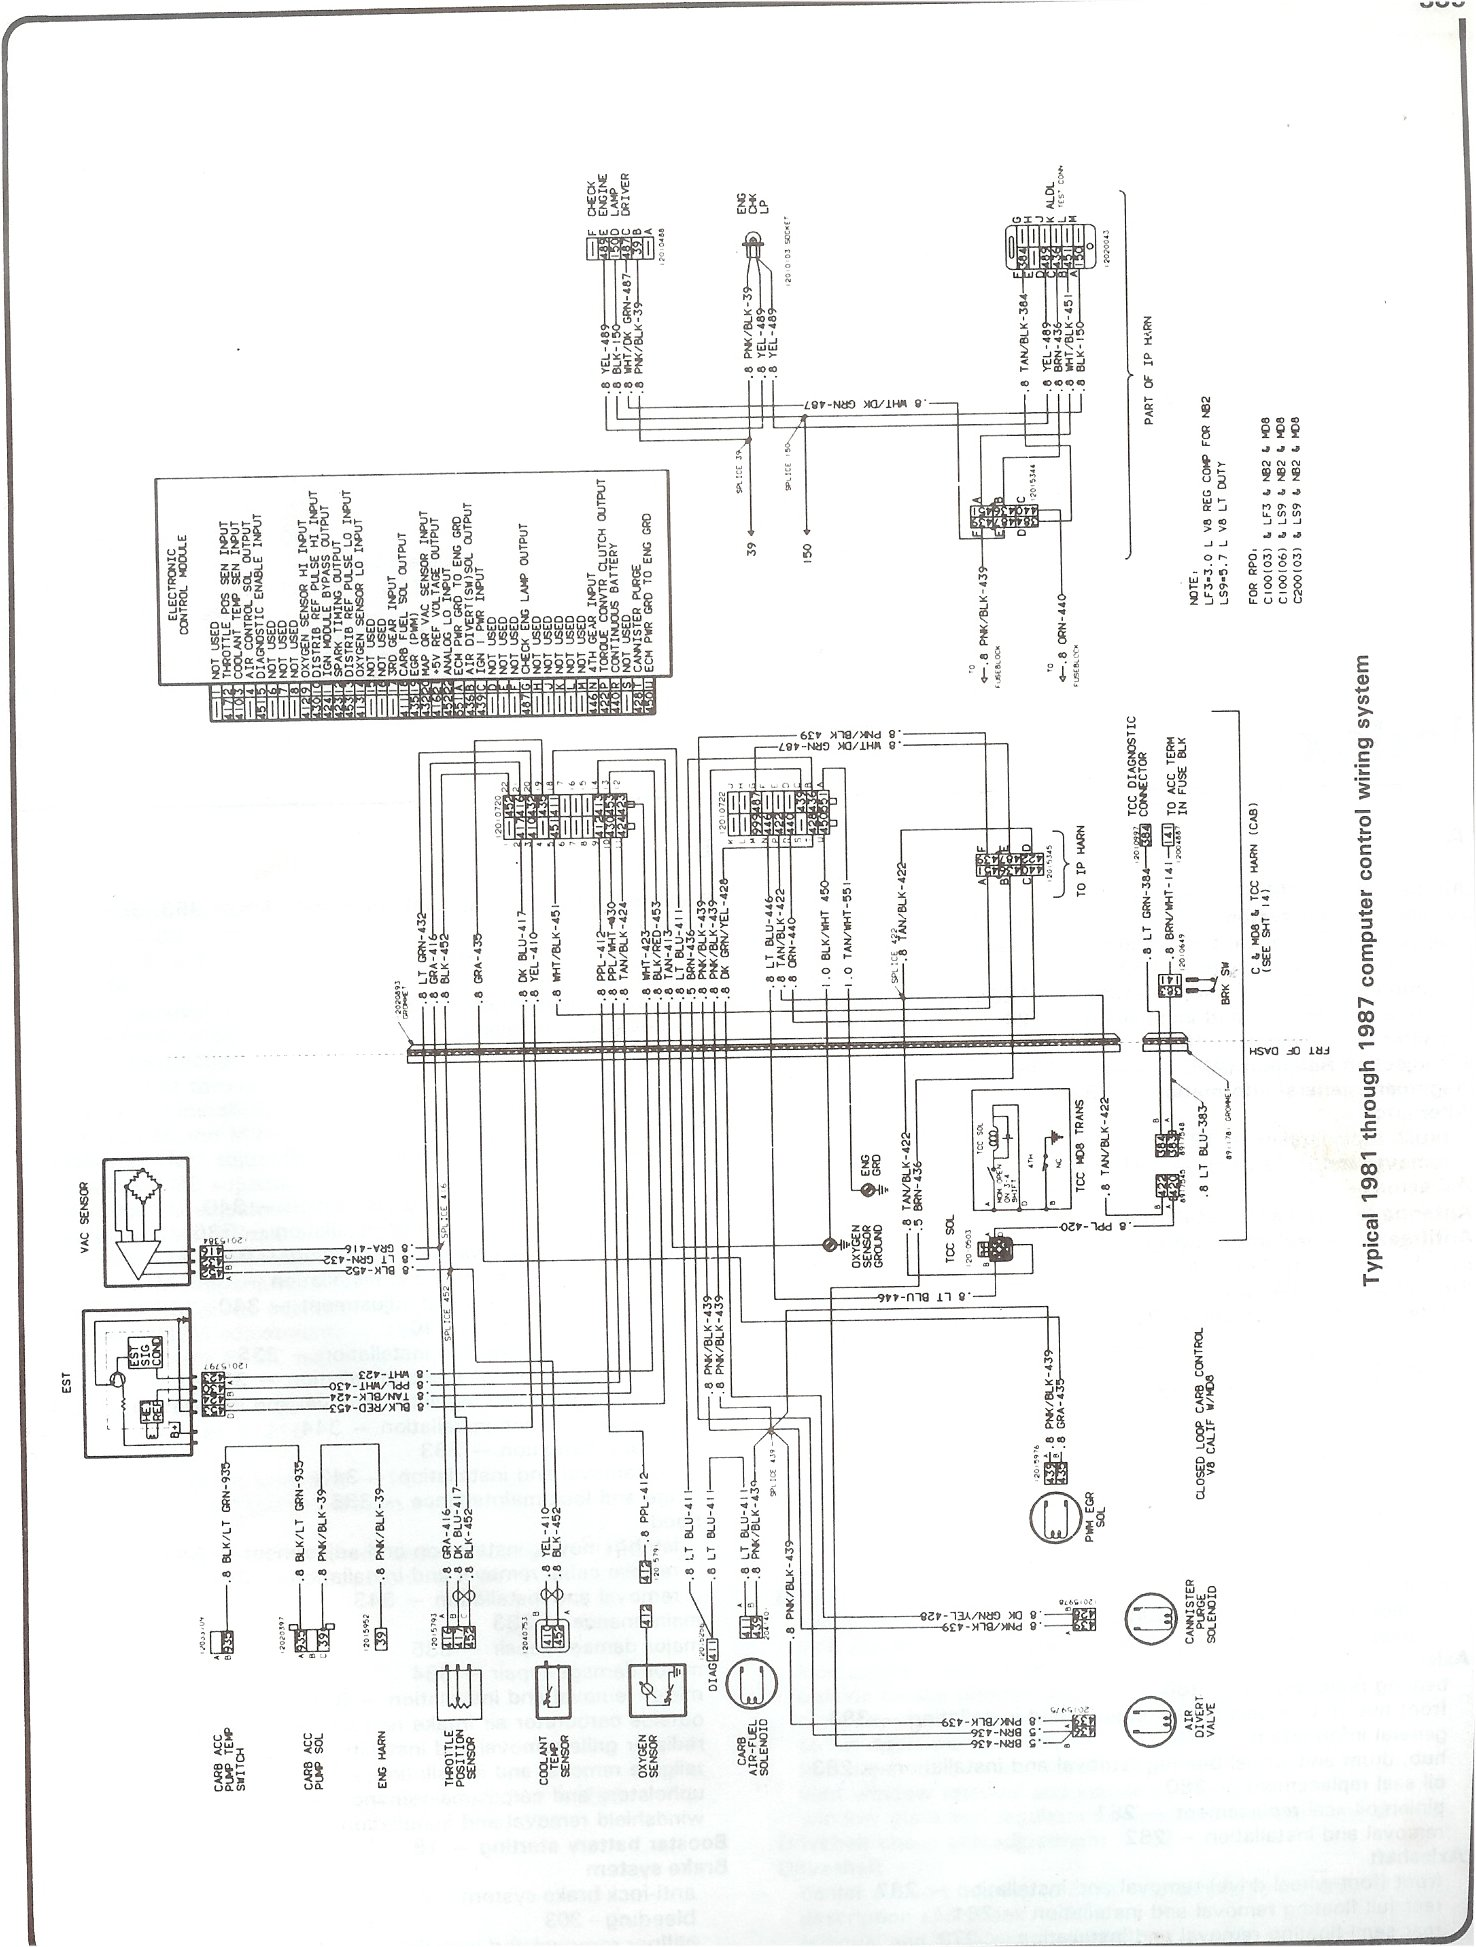 hight resolution of 1975 chevy p30 wiring diagram data wiring schema 63 chevy wiring diagram 1974 chevrolet wiring diagram